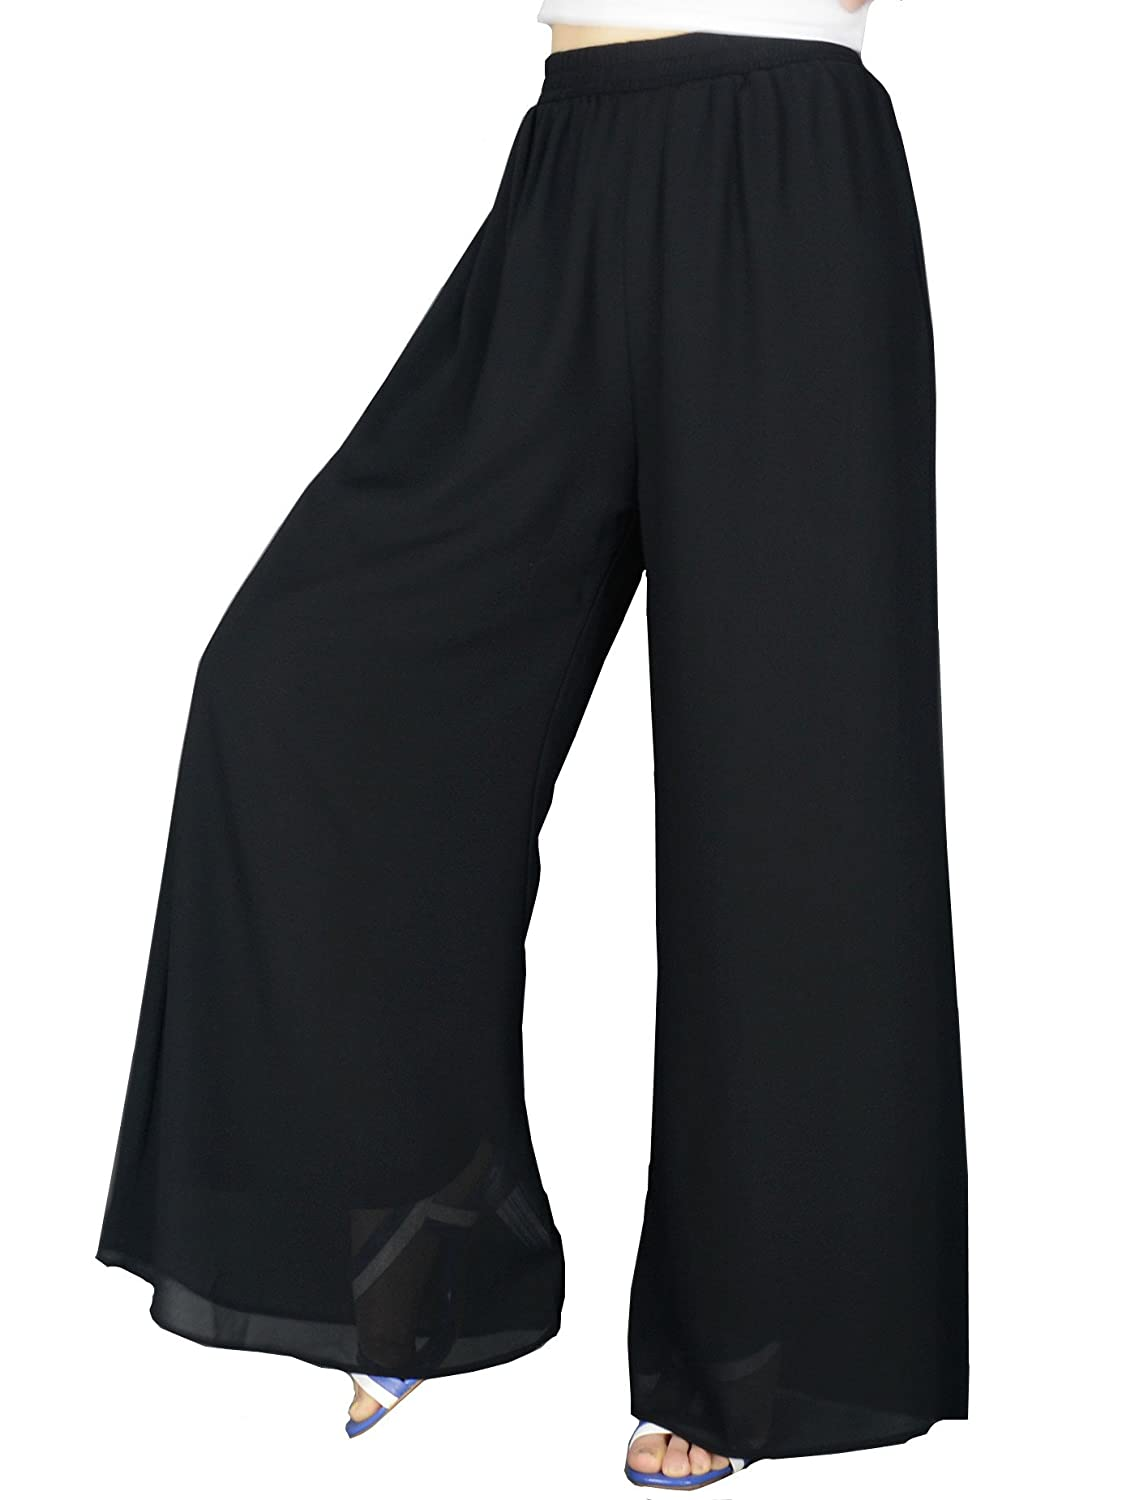 1920s Style Women's Pants, Trousers, Knickers, Tuxedo YSJERA Womens Chiffon Wide Leg Palazzo Pants Maxi Full Length Solid Gaucho Pants Culottes Trousers $21.99 AT vintagedancer.com